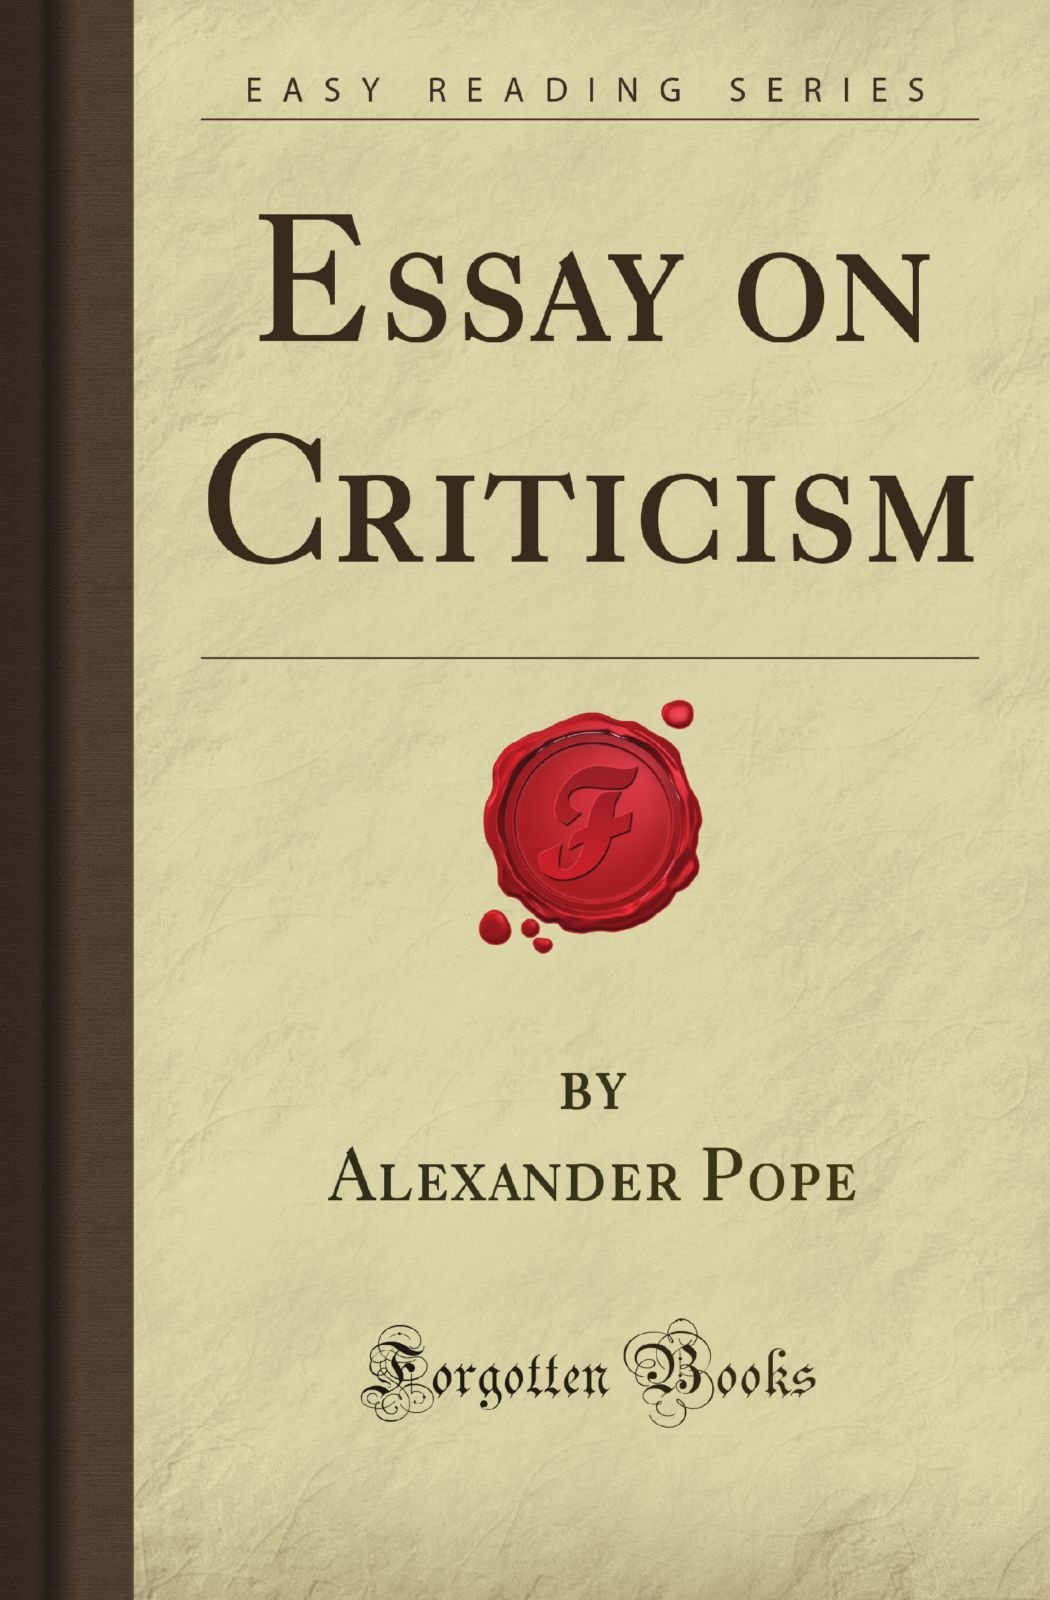 002 Essay On Criticism Example Singular Alexander Pope Analysis Part 2 Summary Full